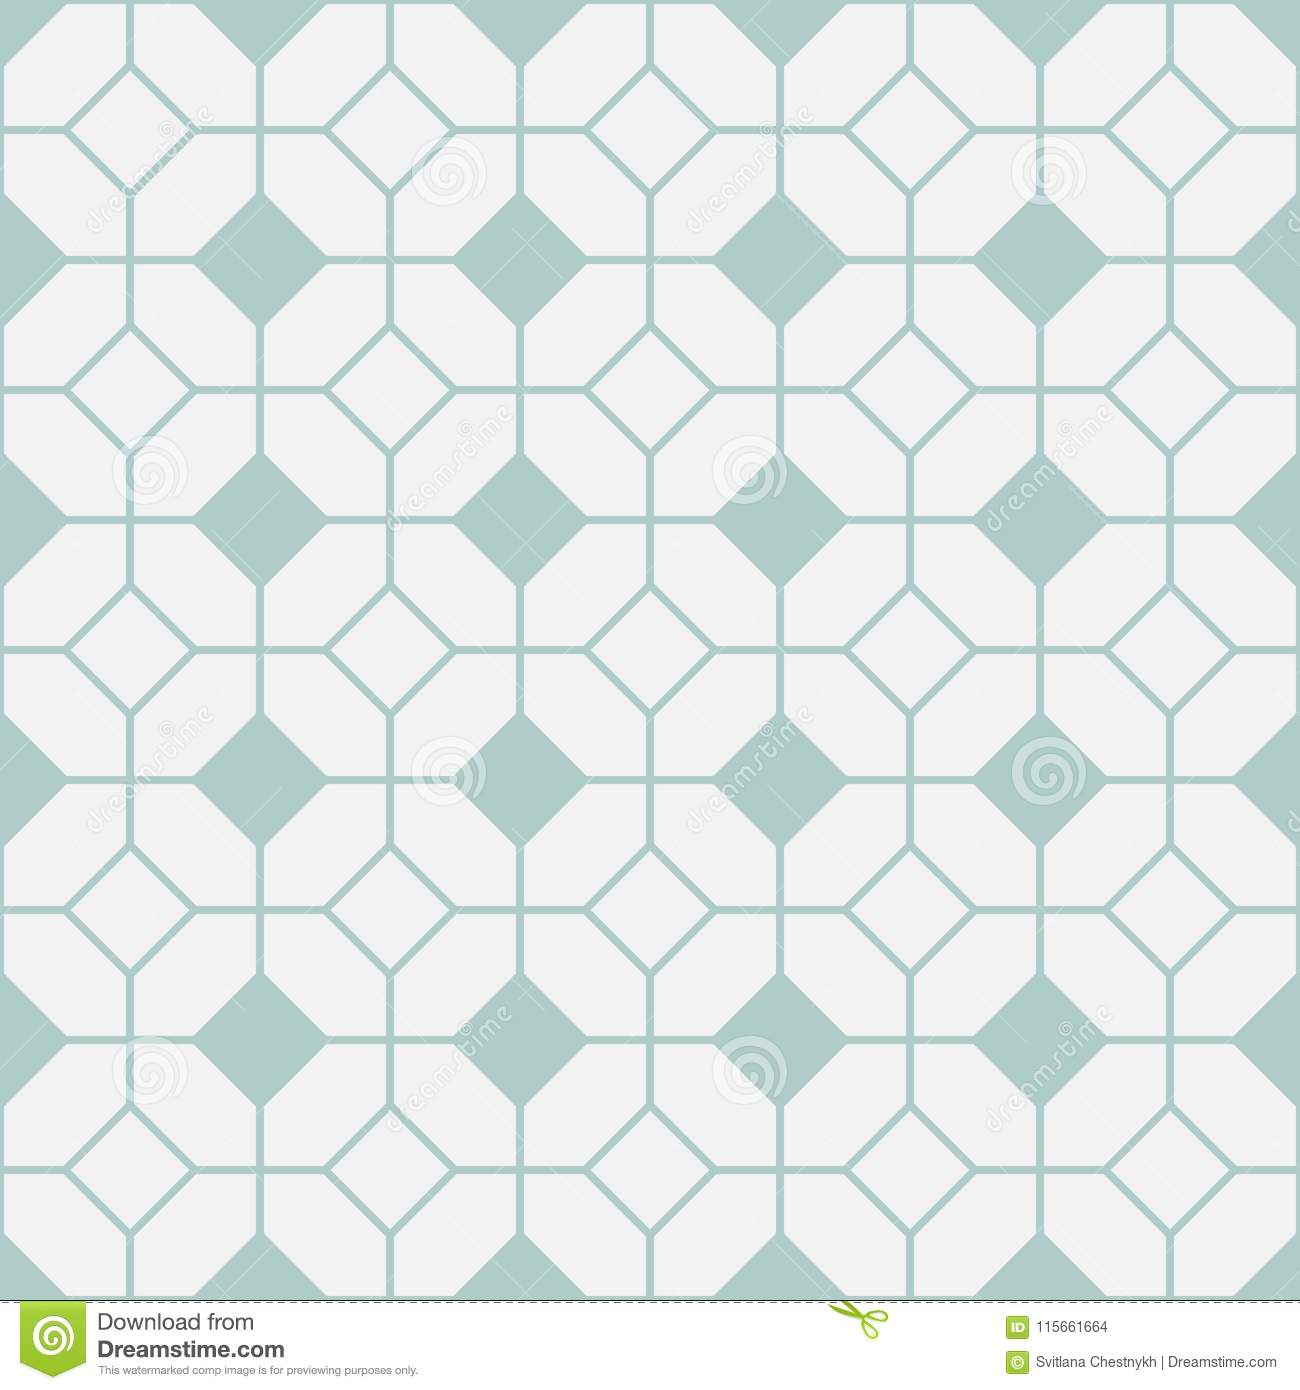 https www dreamstime com simple floor tile pattern abstract geometric seamless background portuguese tiles vector illustration teal grey diamond shapes image115661664